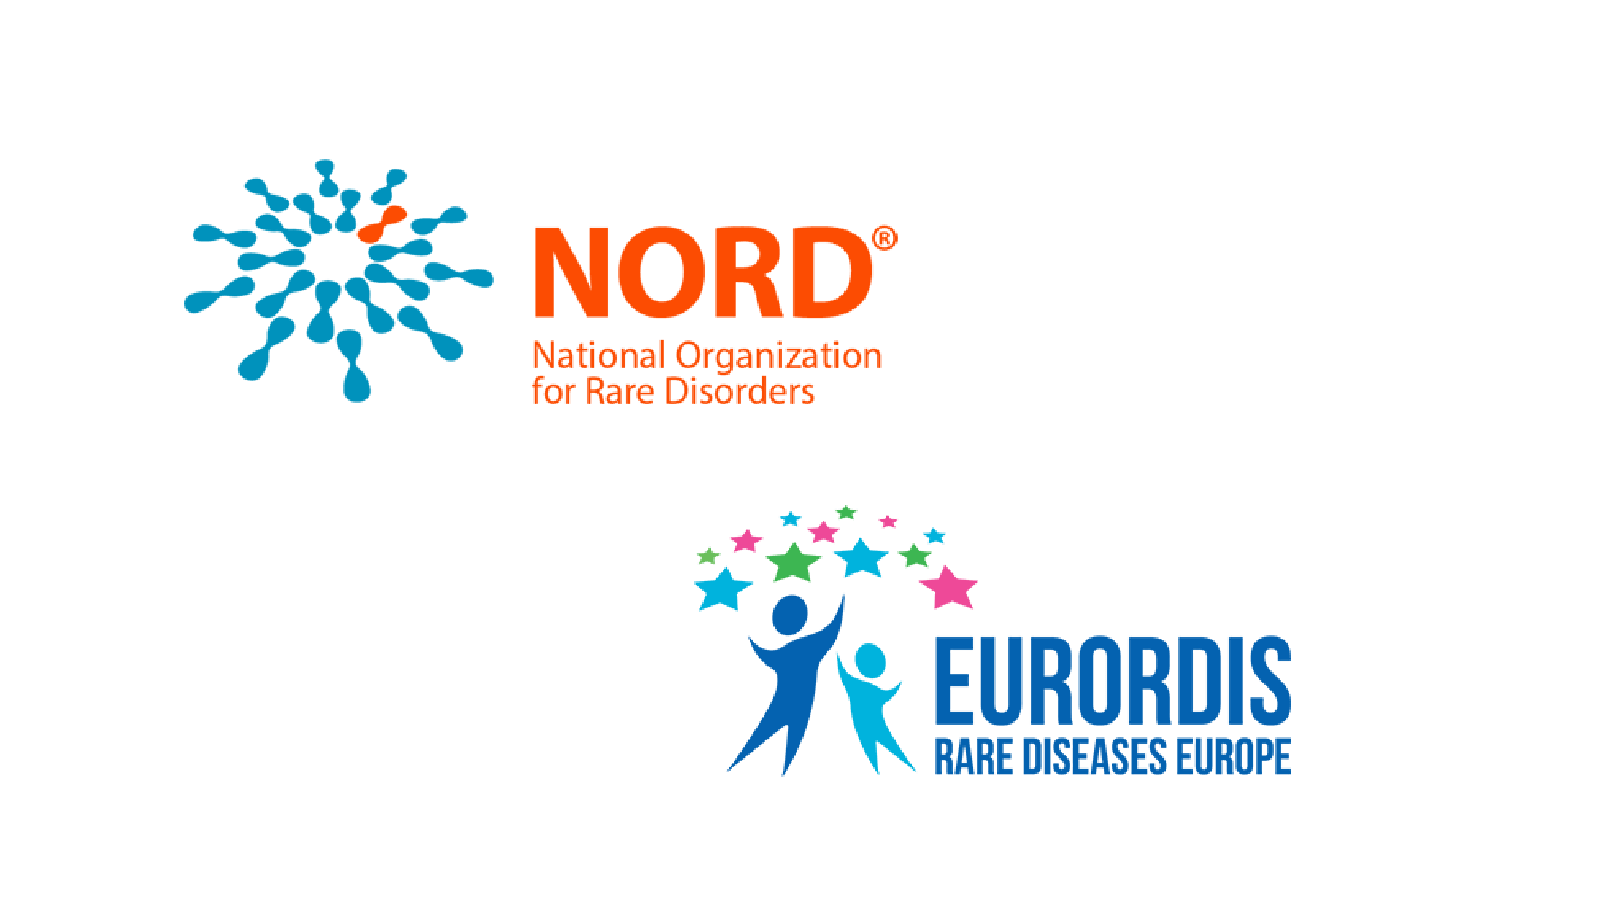 logos for the National Organization for Rare Disorders (NORD) and EURORDIS